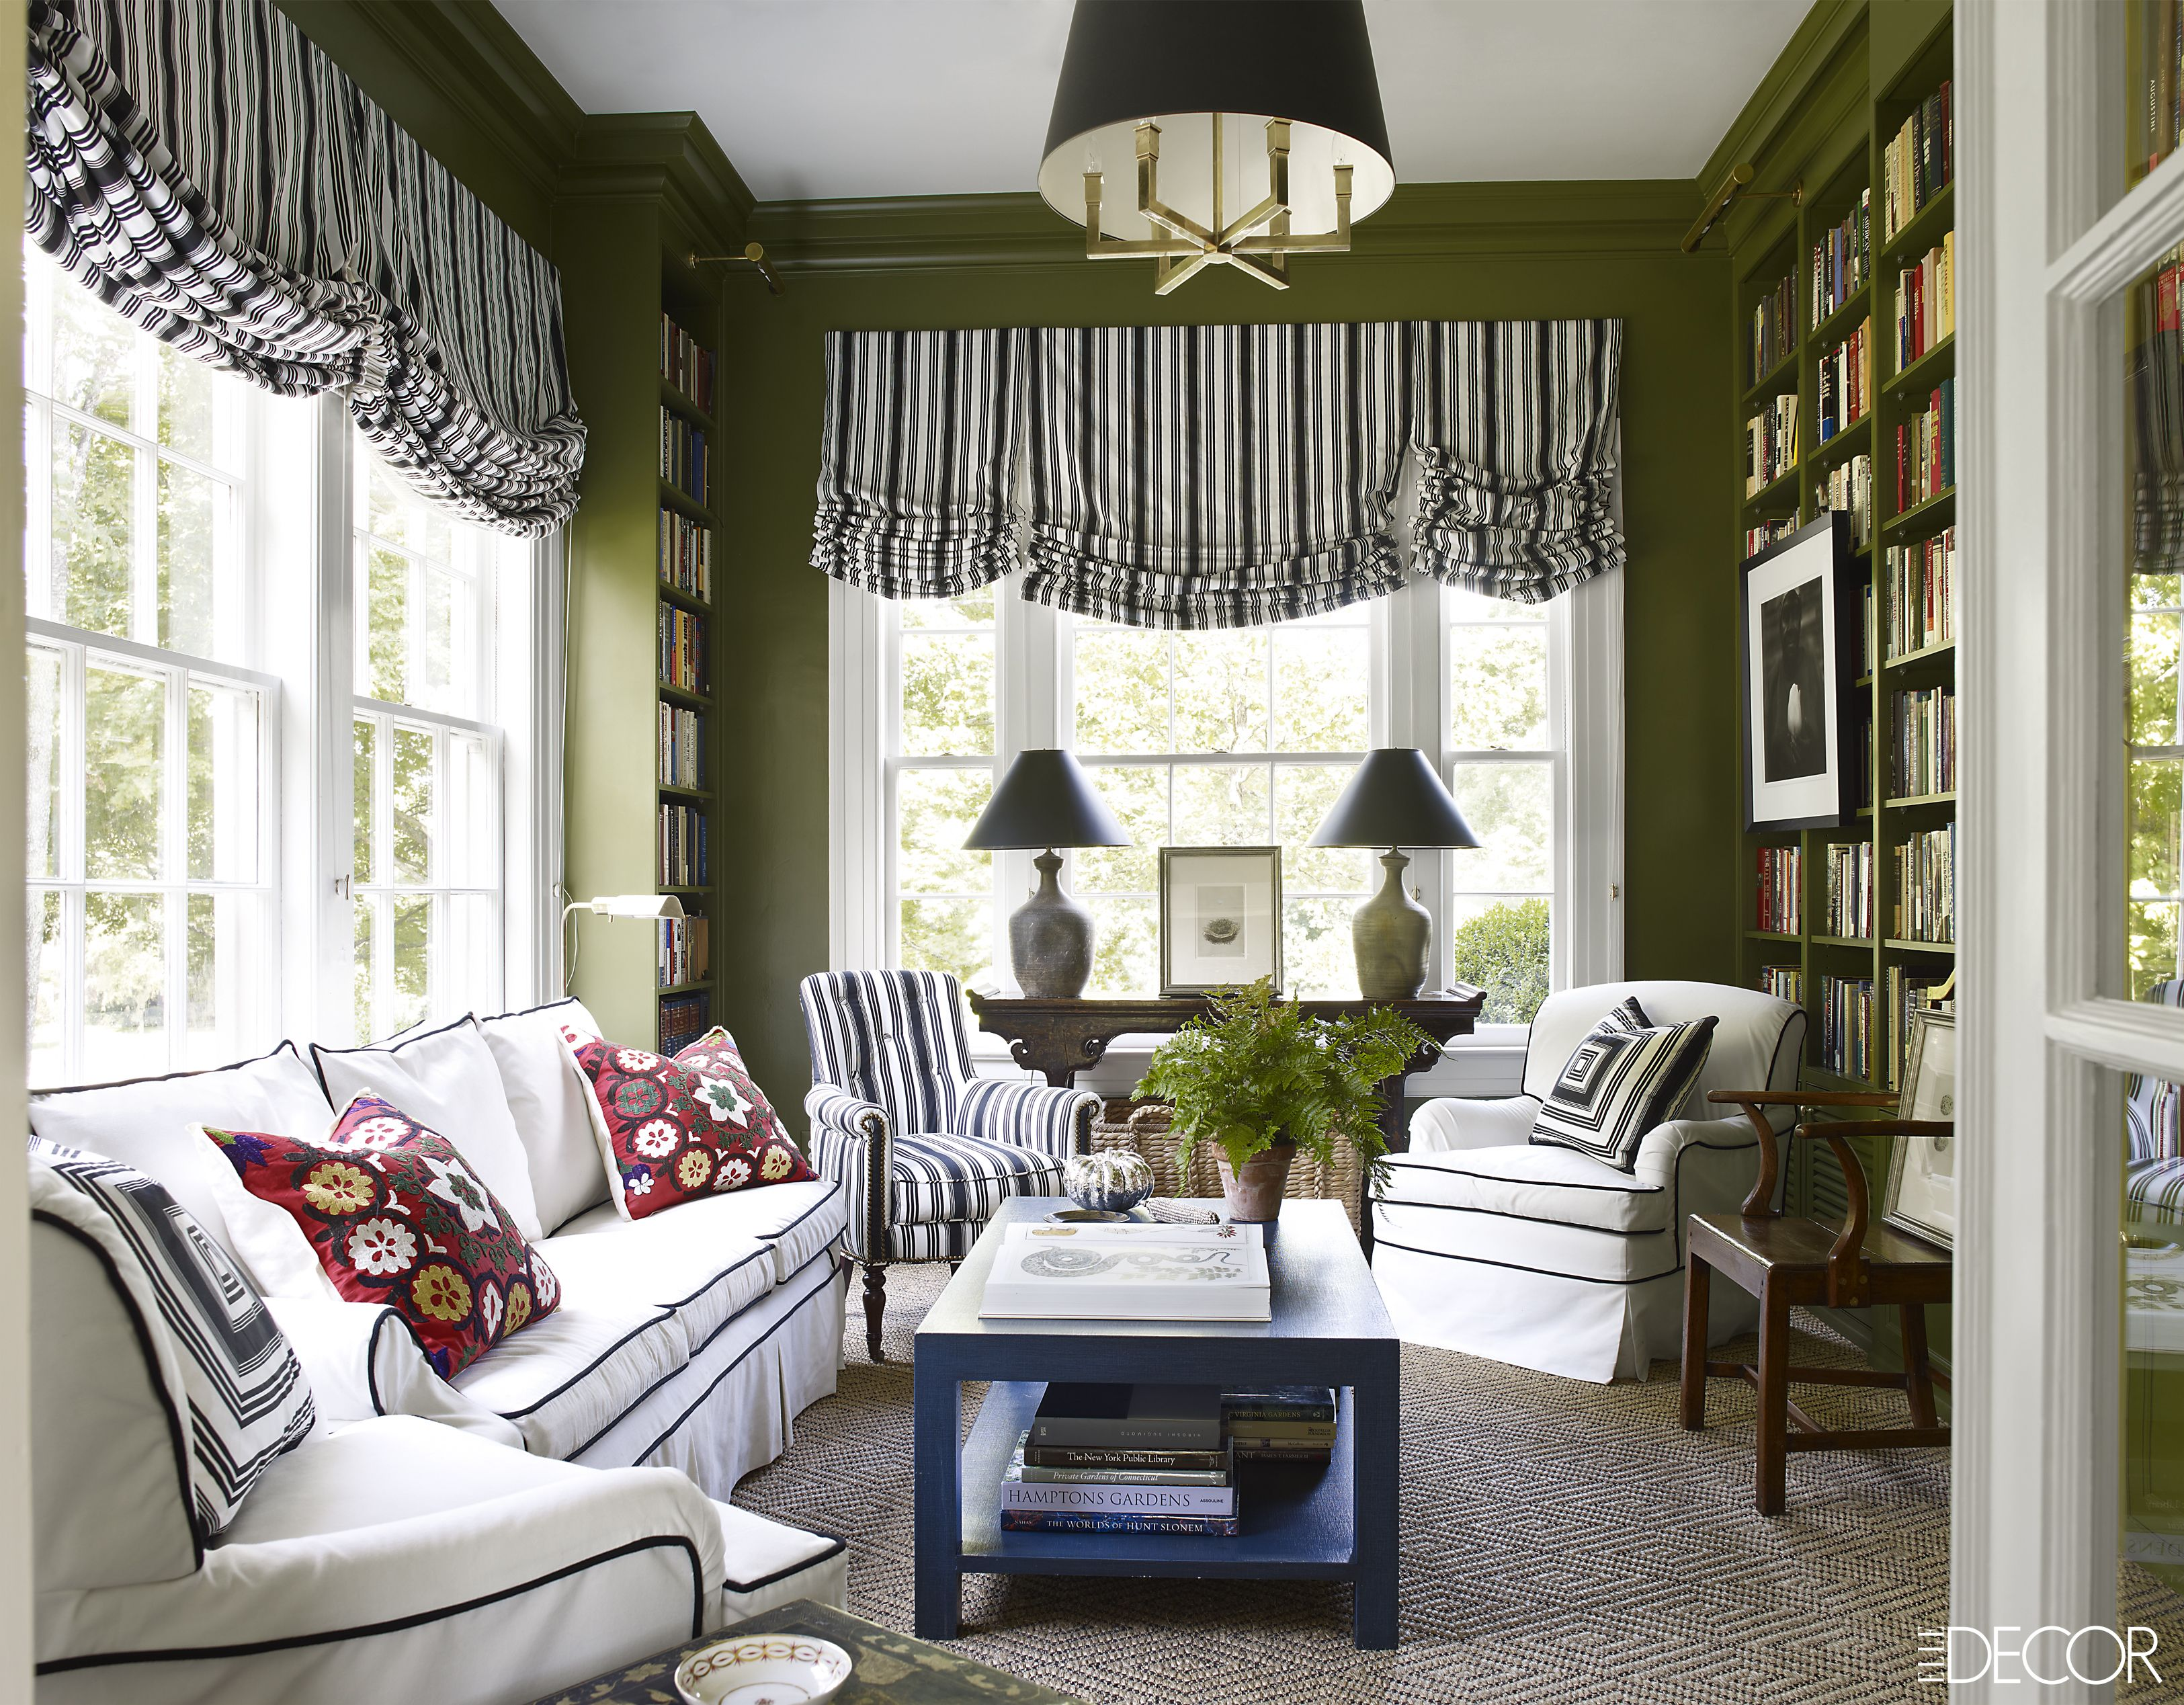 Living room color schemes green - Olive Green Paint Color Decor Ideas Olive Green Walls Furniture Decorations